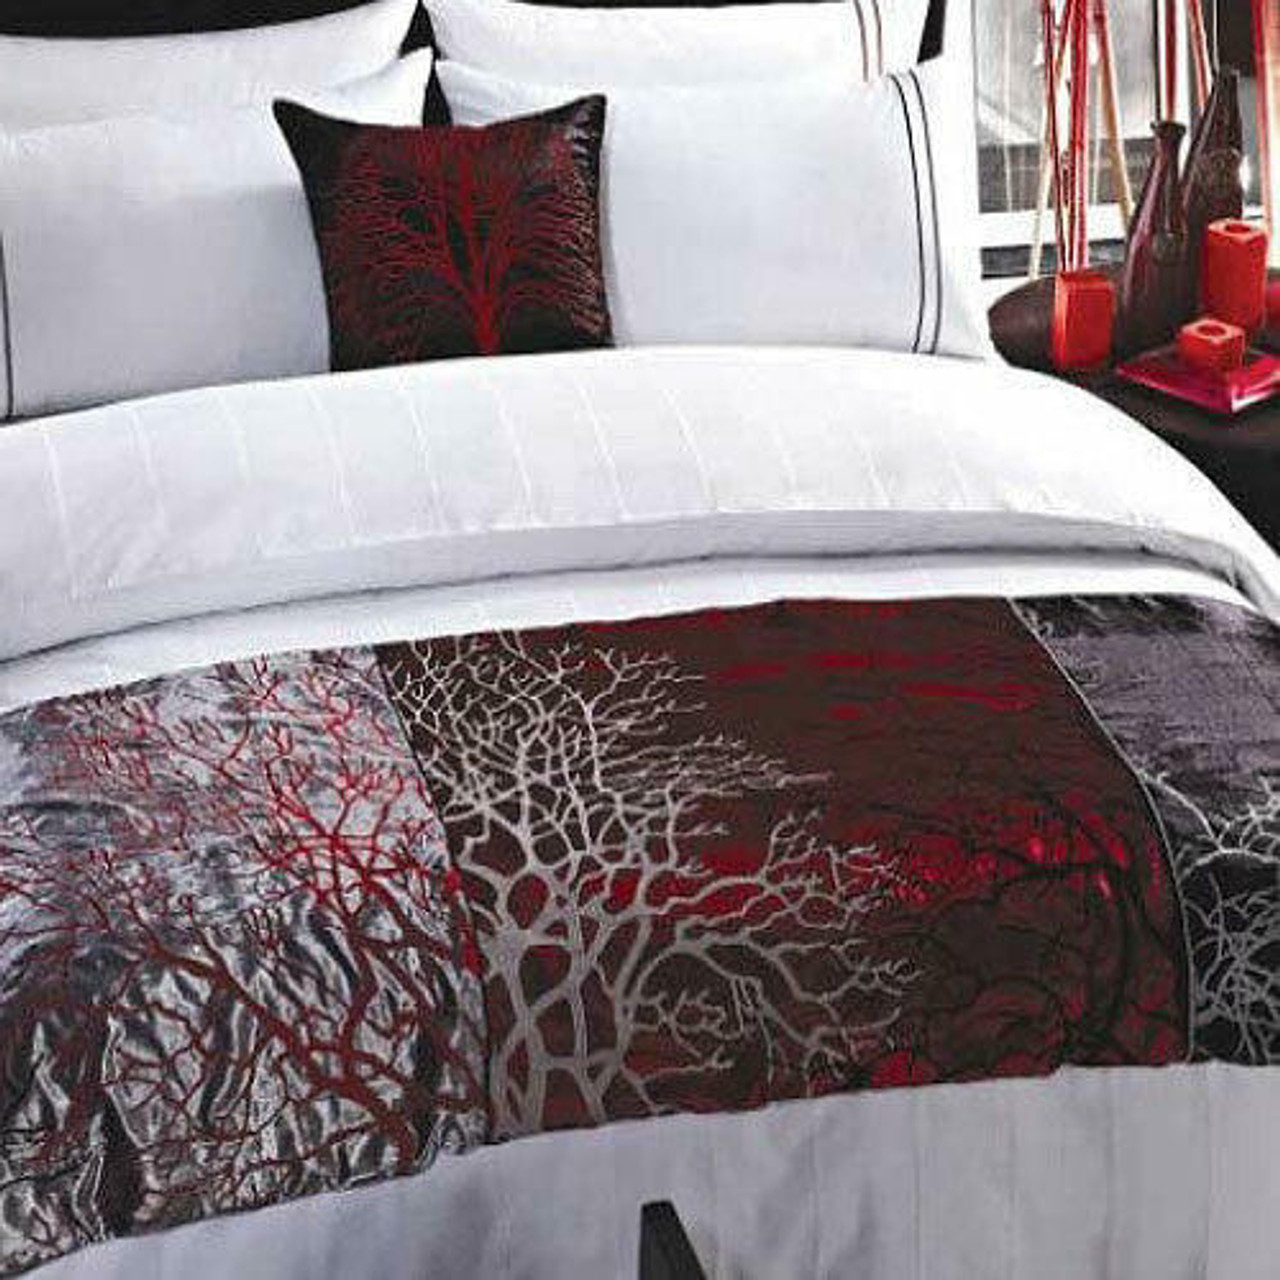 Ganesh Mills or Oxford Super Blend GANESH or HEAVY DUVET INSERTS or TWIN 66X89 or 100percent COTTON CAMBRIC or MICRO GEL FIBER WHITE